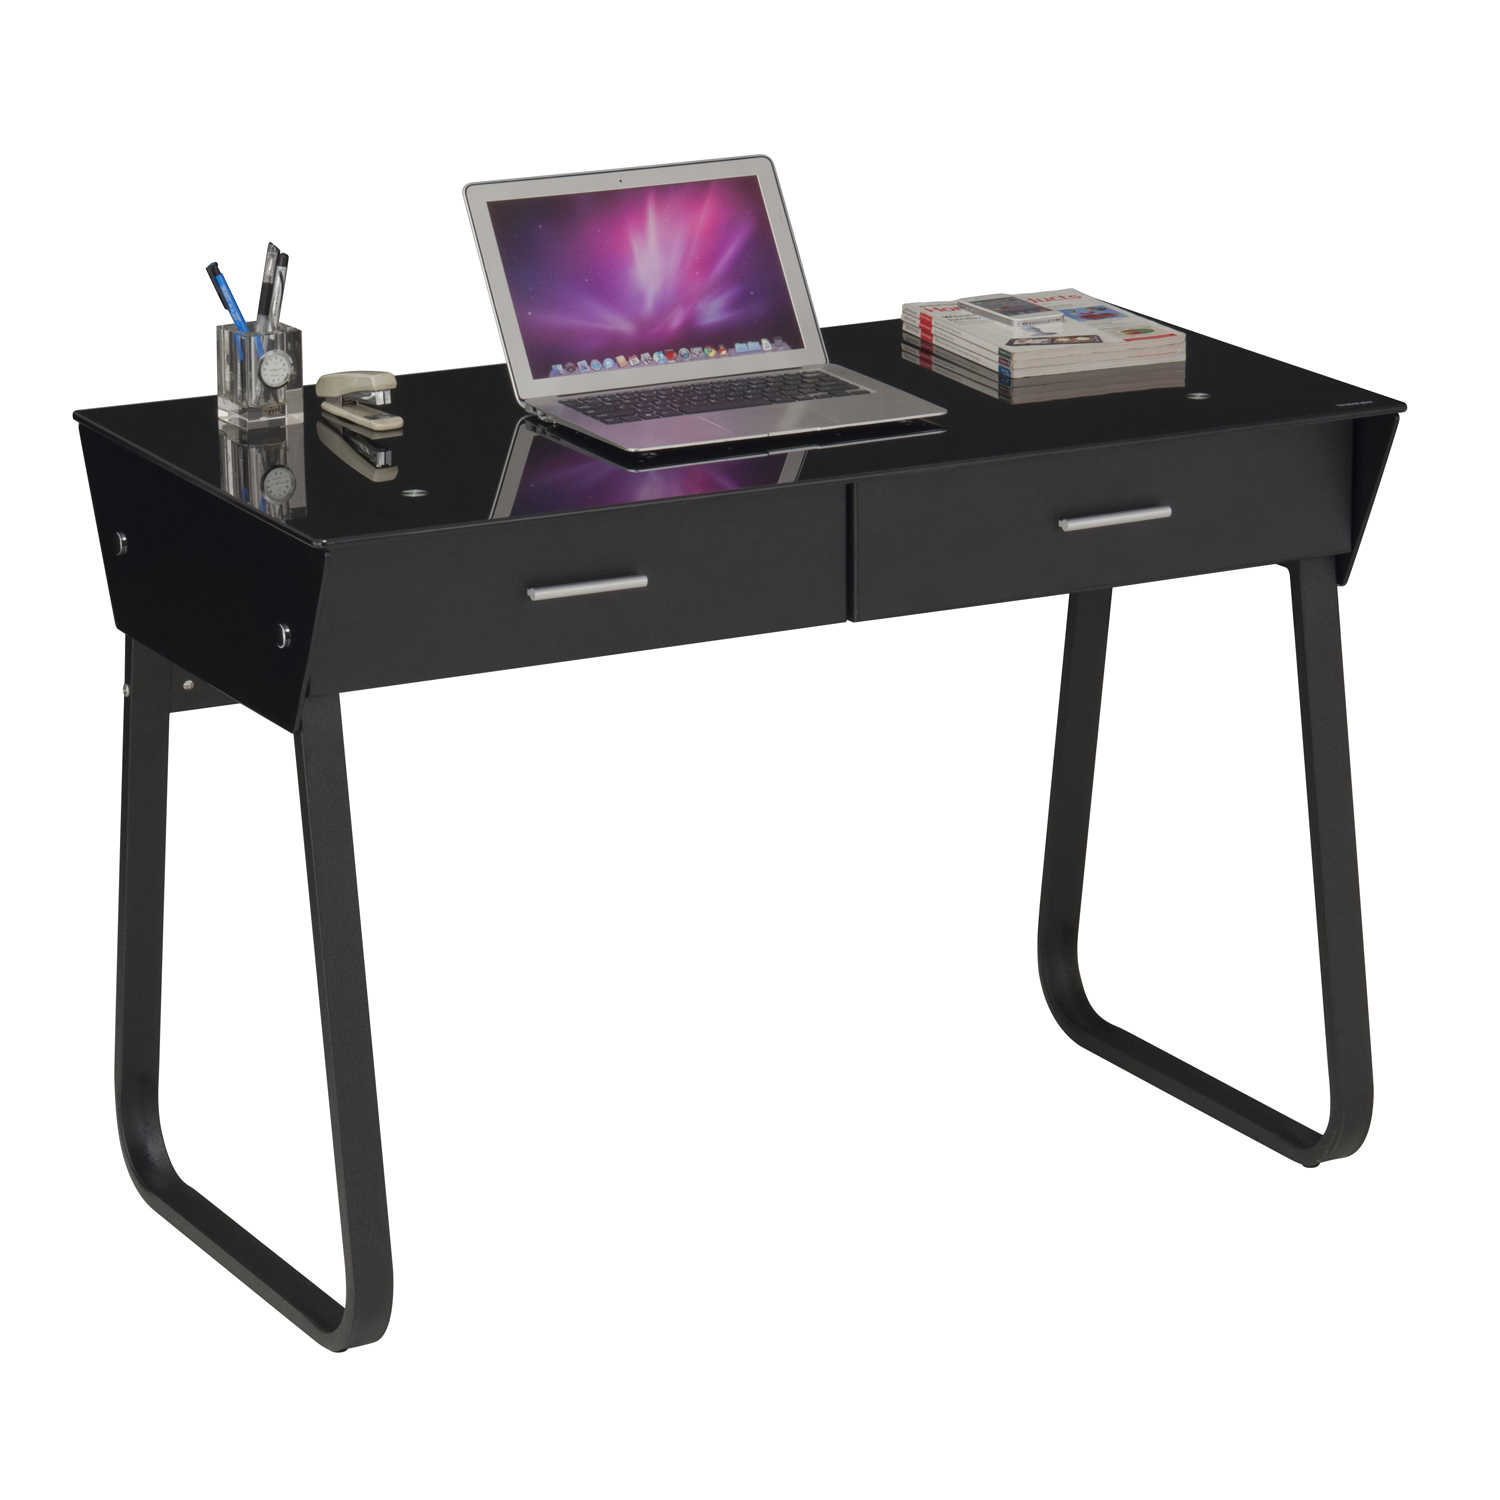 for corner table desk home flair out desktop gaming tables of office computer world this most large